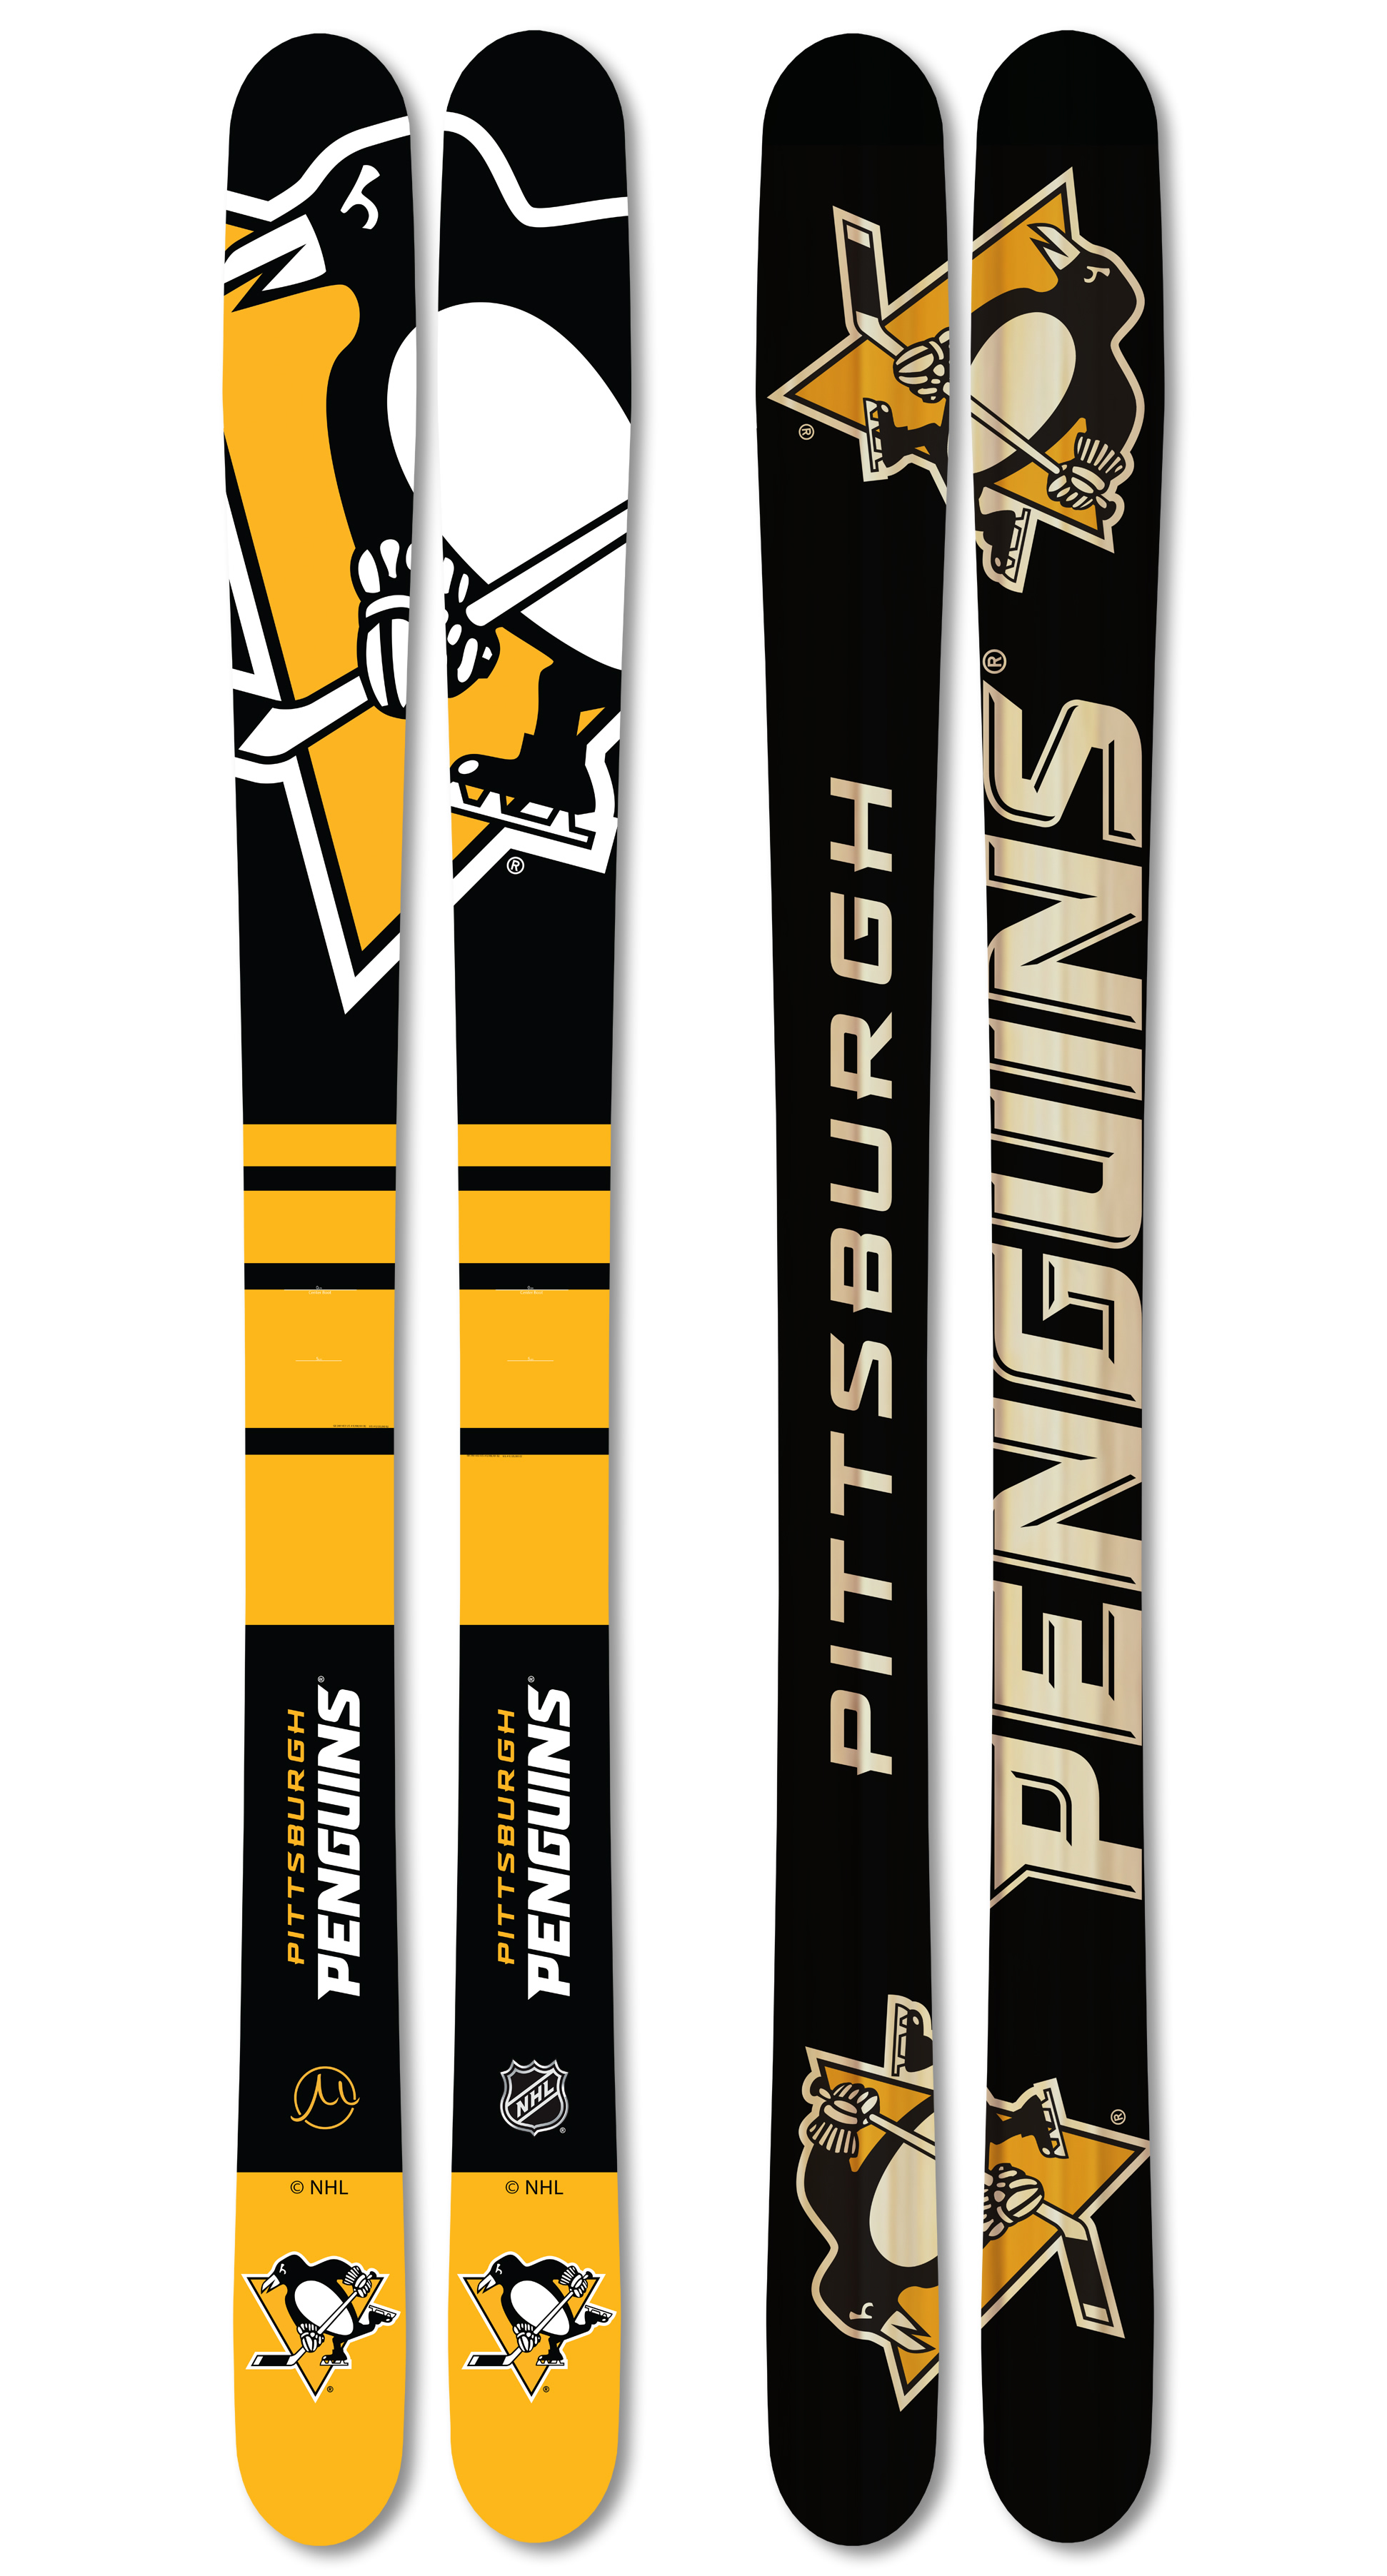 Nhl pittsburgh penguins youth skis large